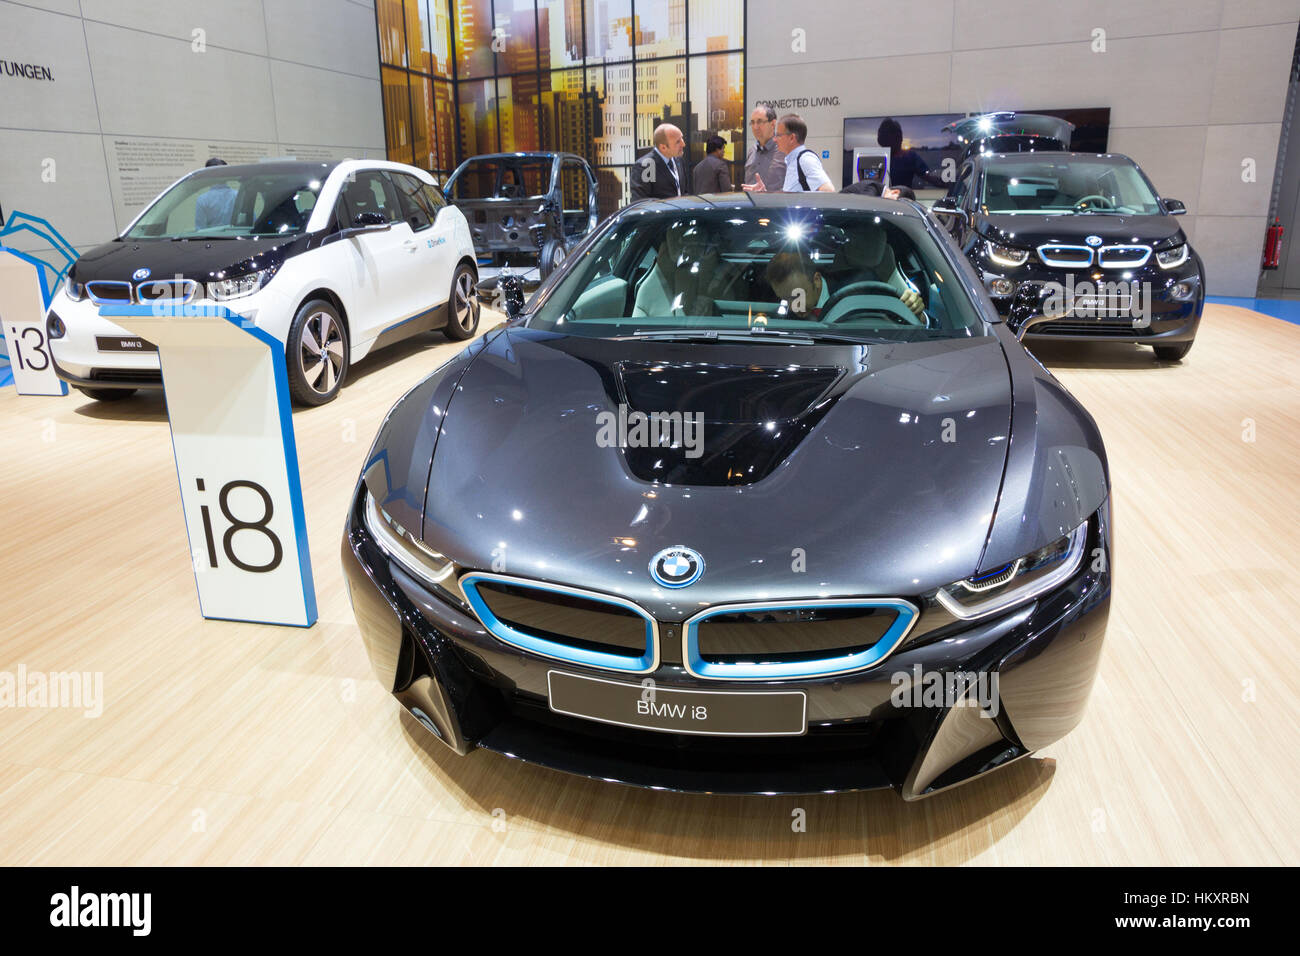 Bmw I8 Sports Car Stock Photos Amp Bmw I8 Sports Car Stock